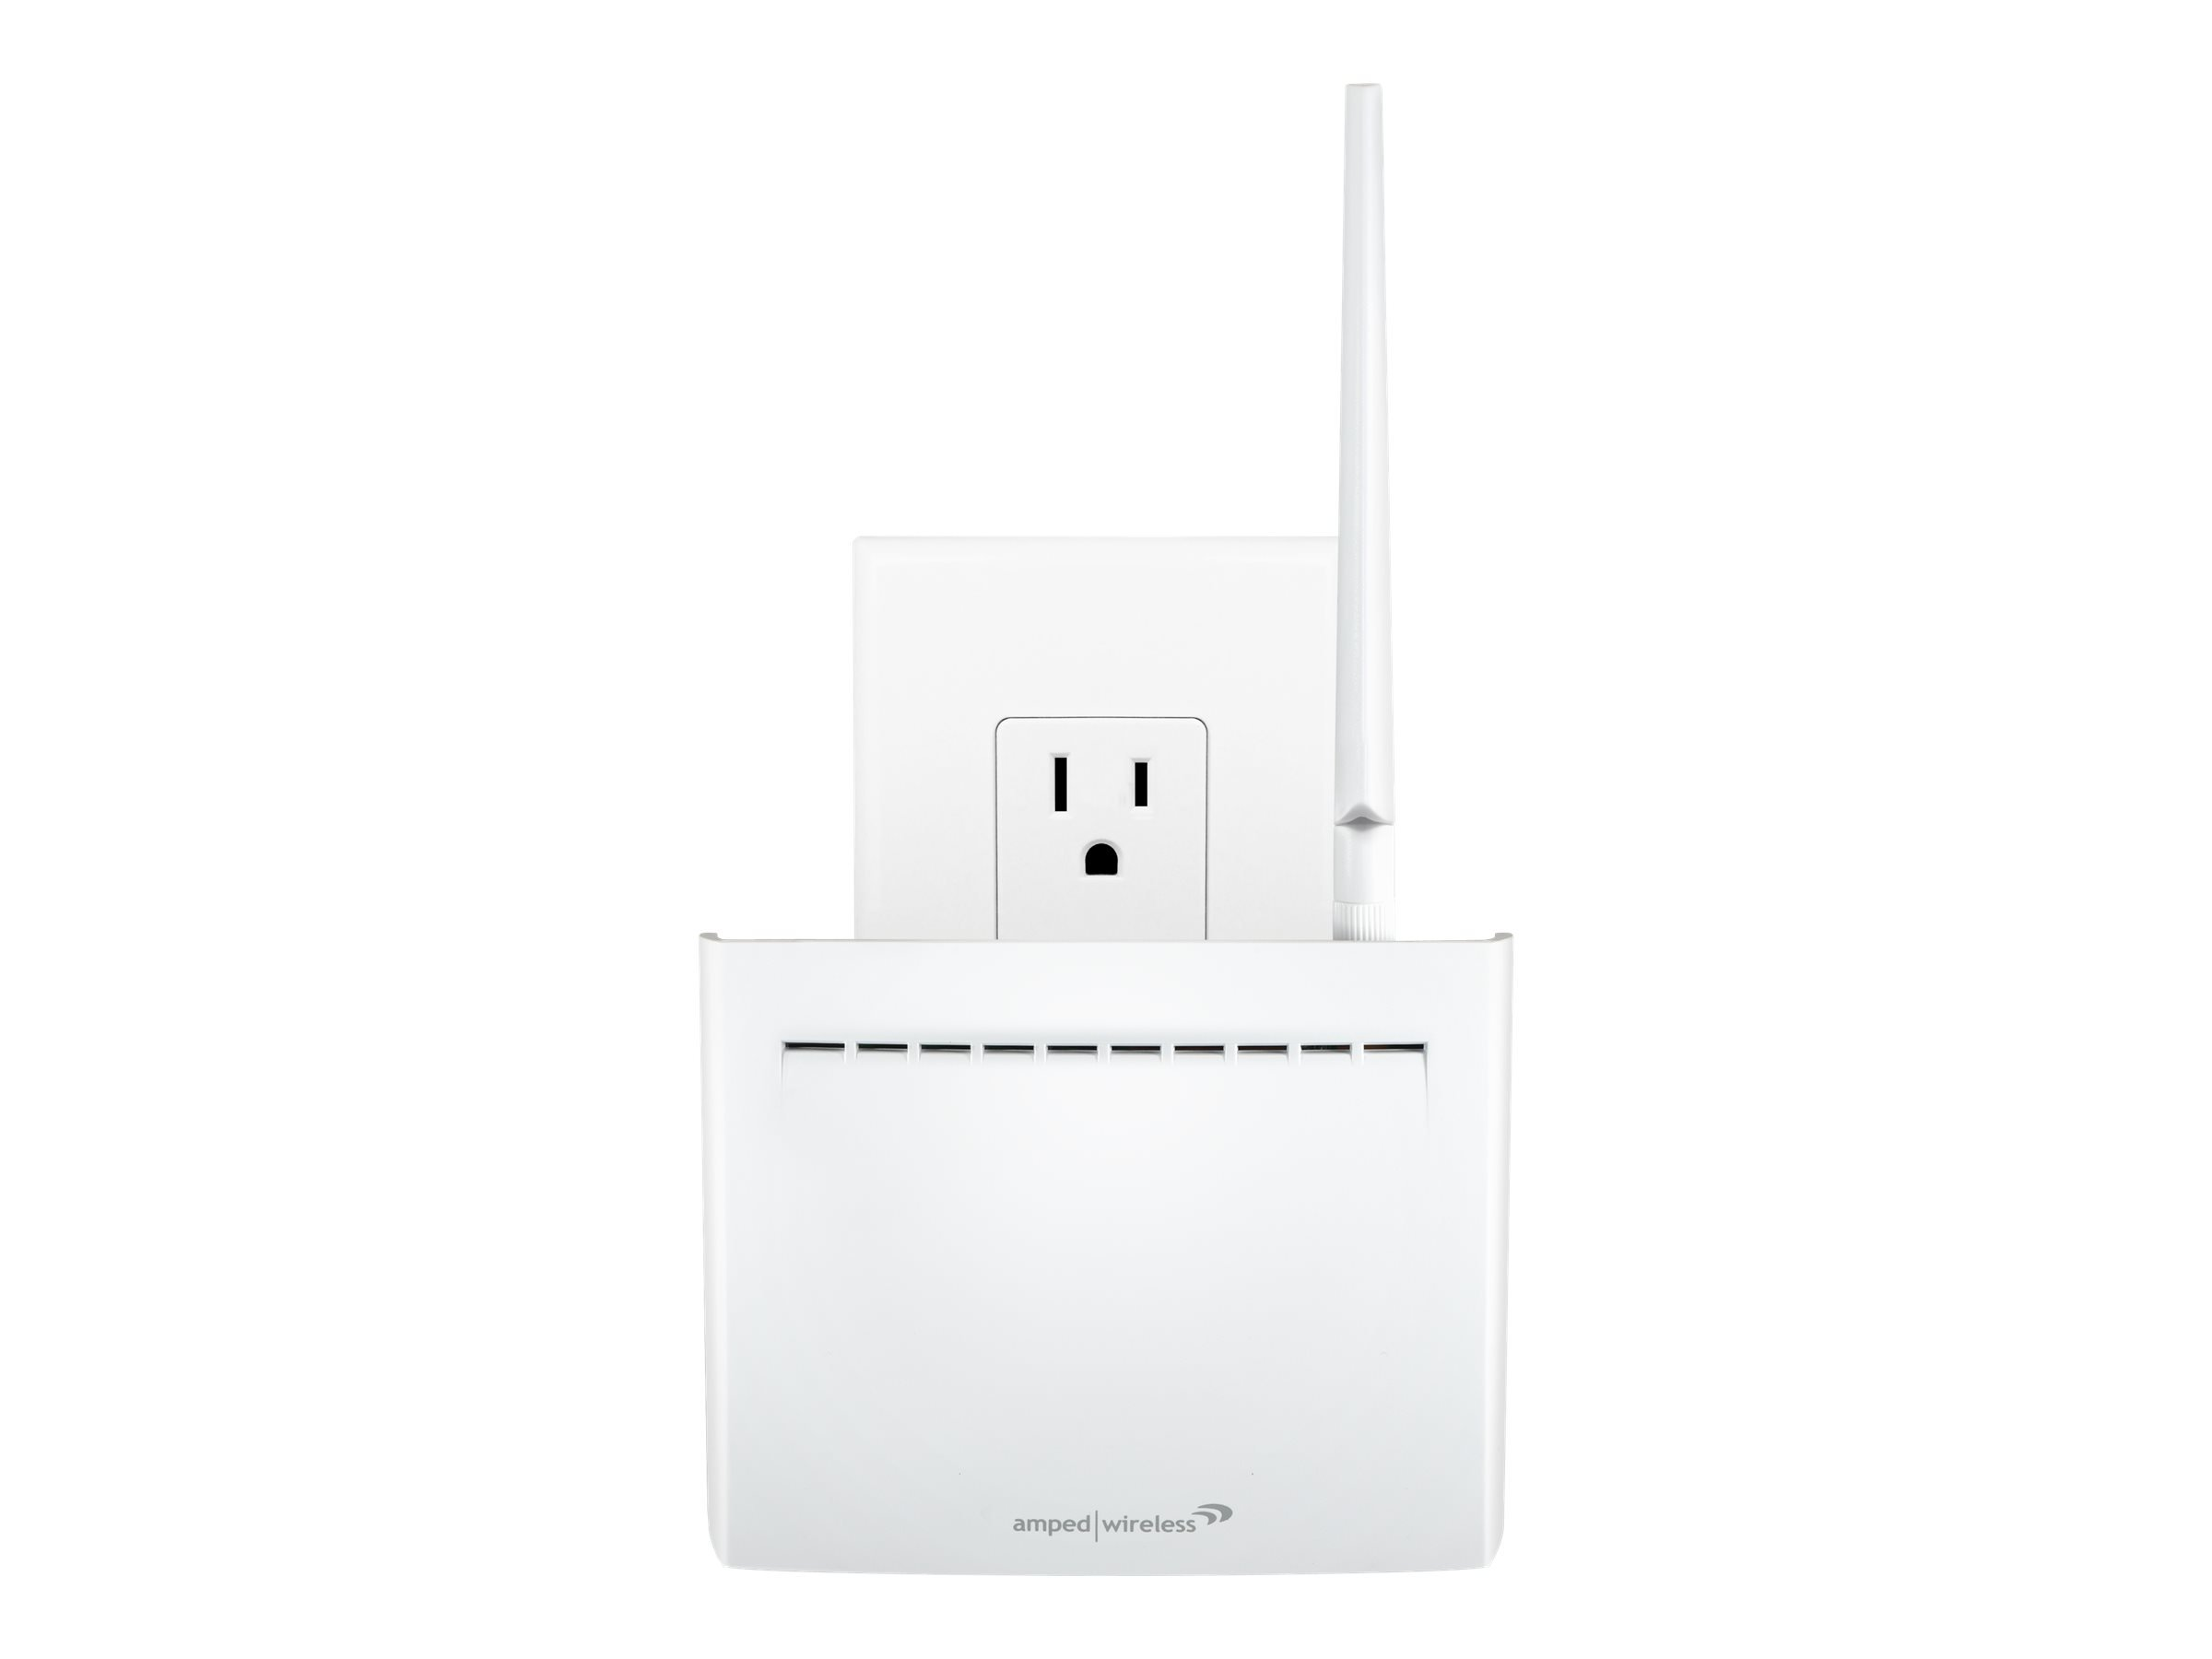 Amped REC33A Wireless High Power Plug-In AC1750 Wi-Fi Range Extender by Amped Wireless (Image #2)